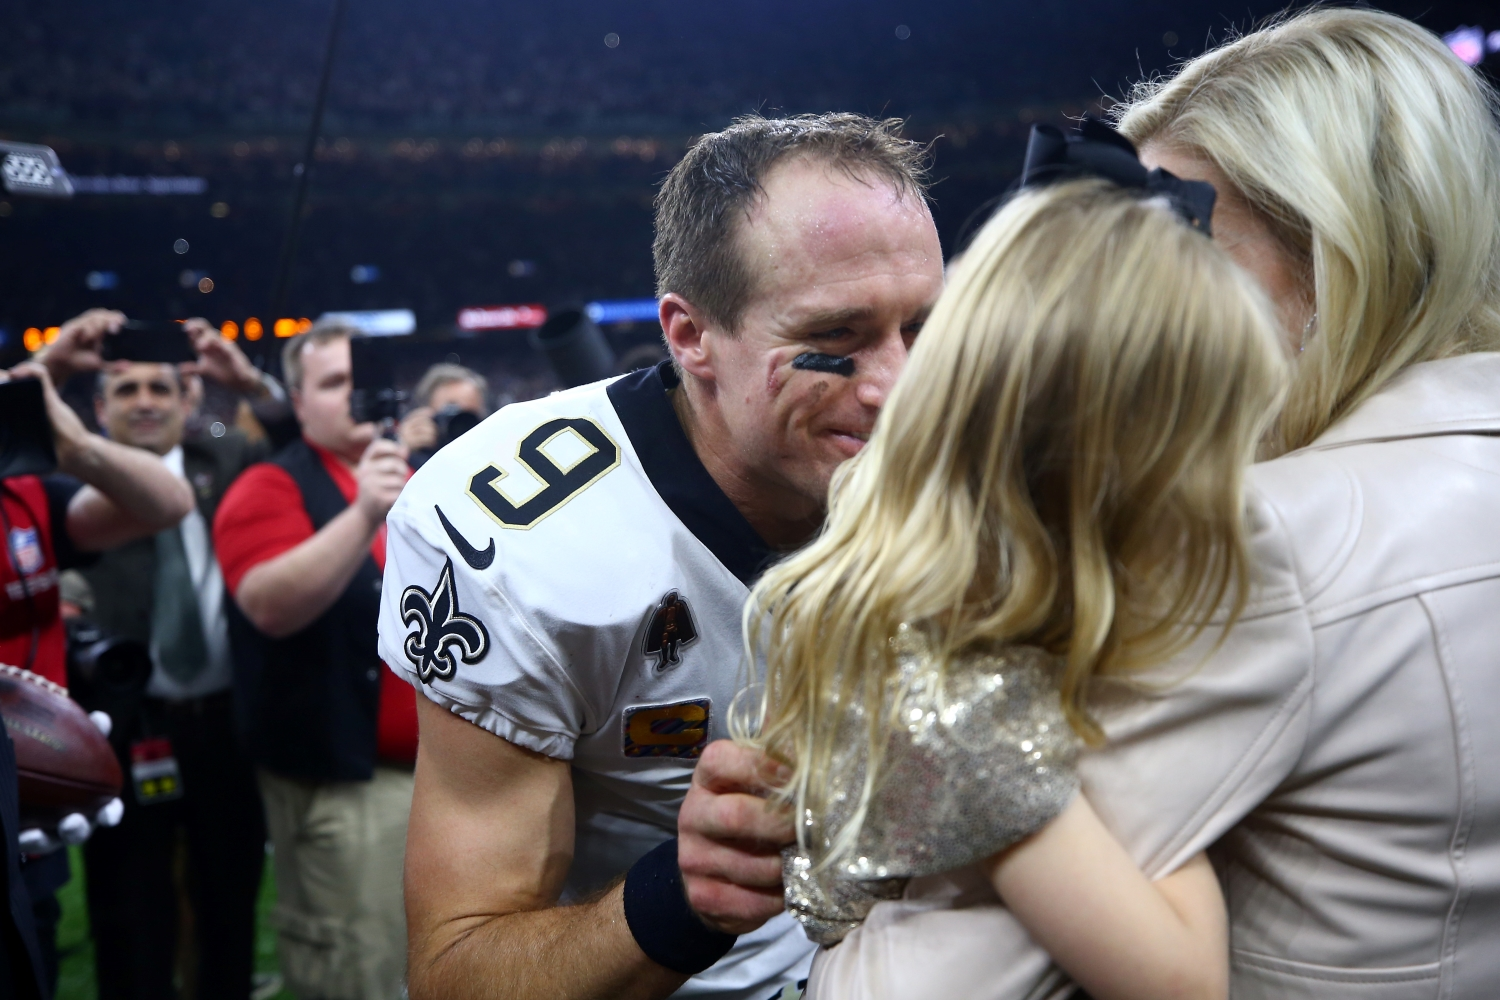 New Orleans Saints quarterback Drew Brees celebrates with his family after he broke the NFL's all-time passing yards record on Oct. 8, 2018.